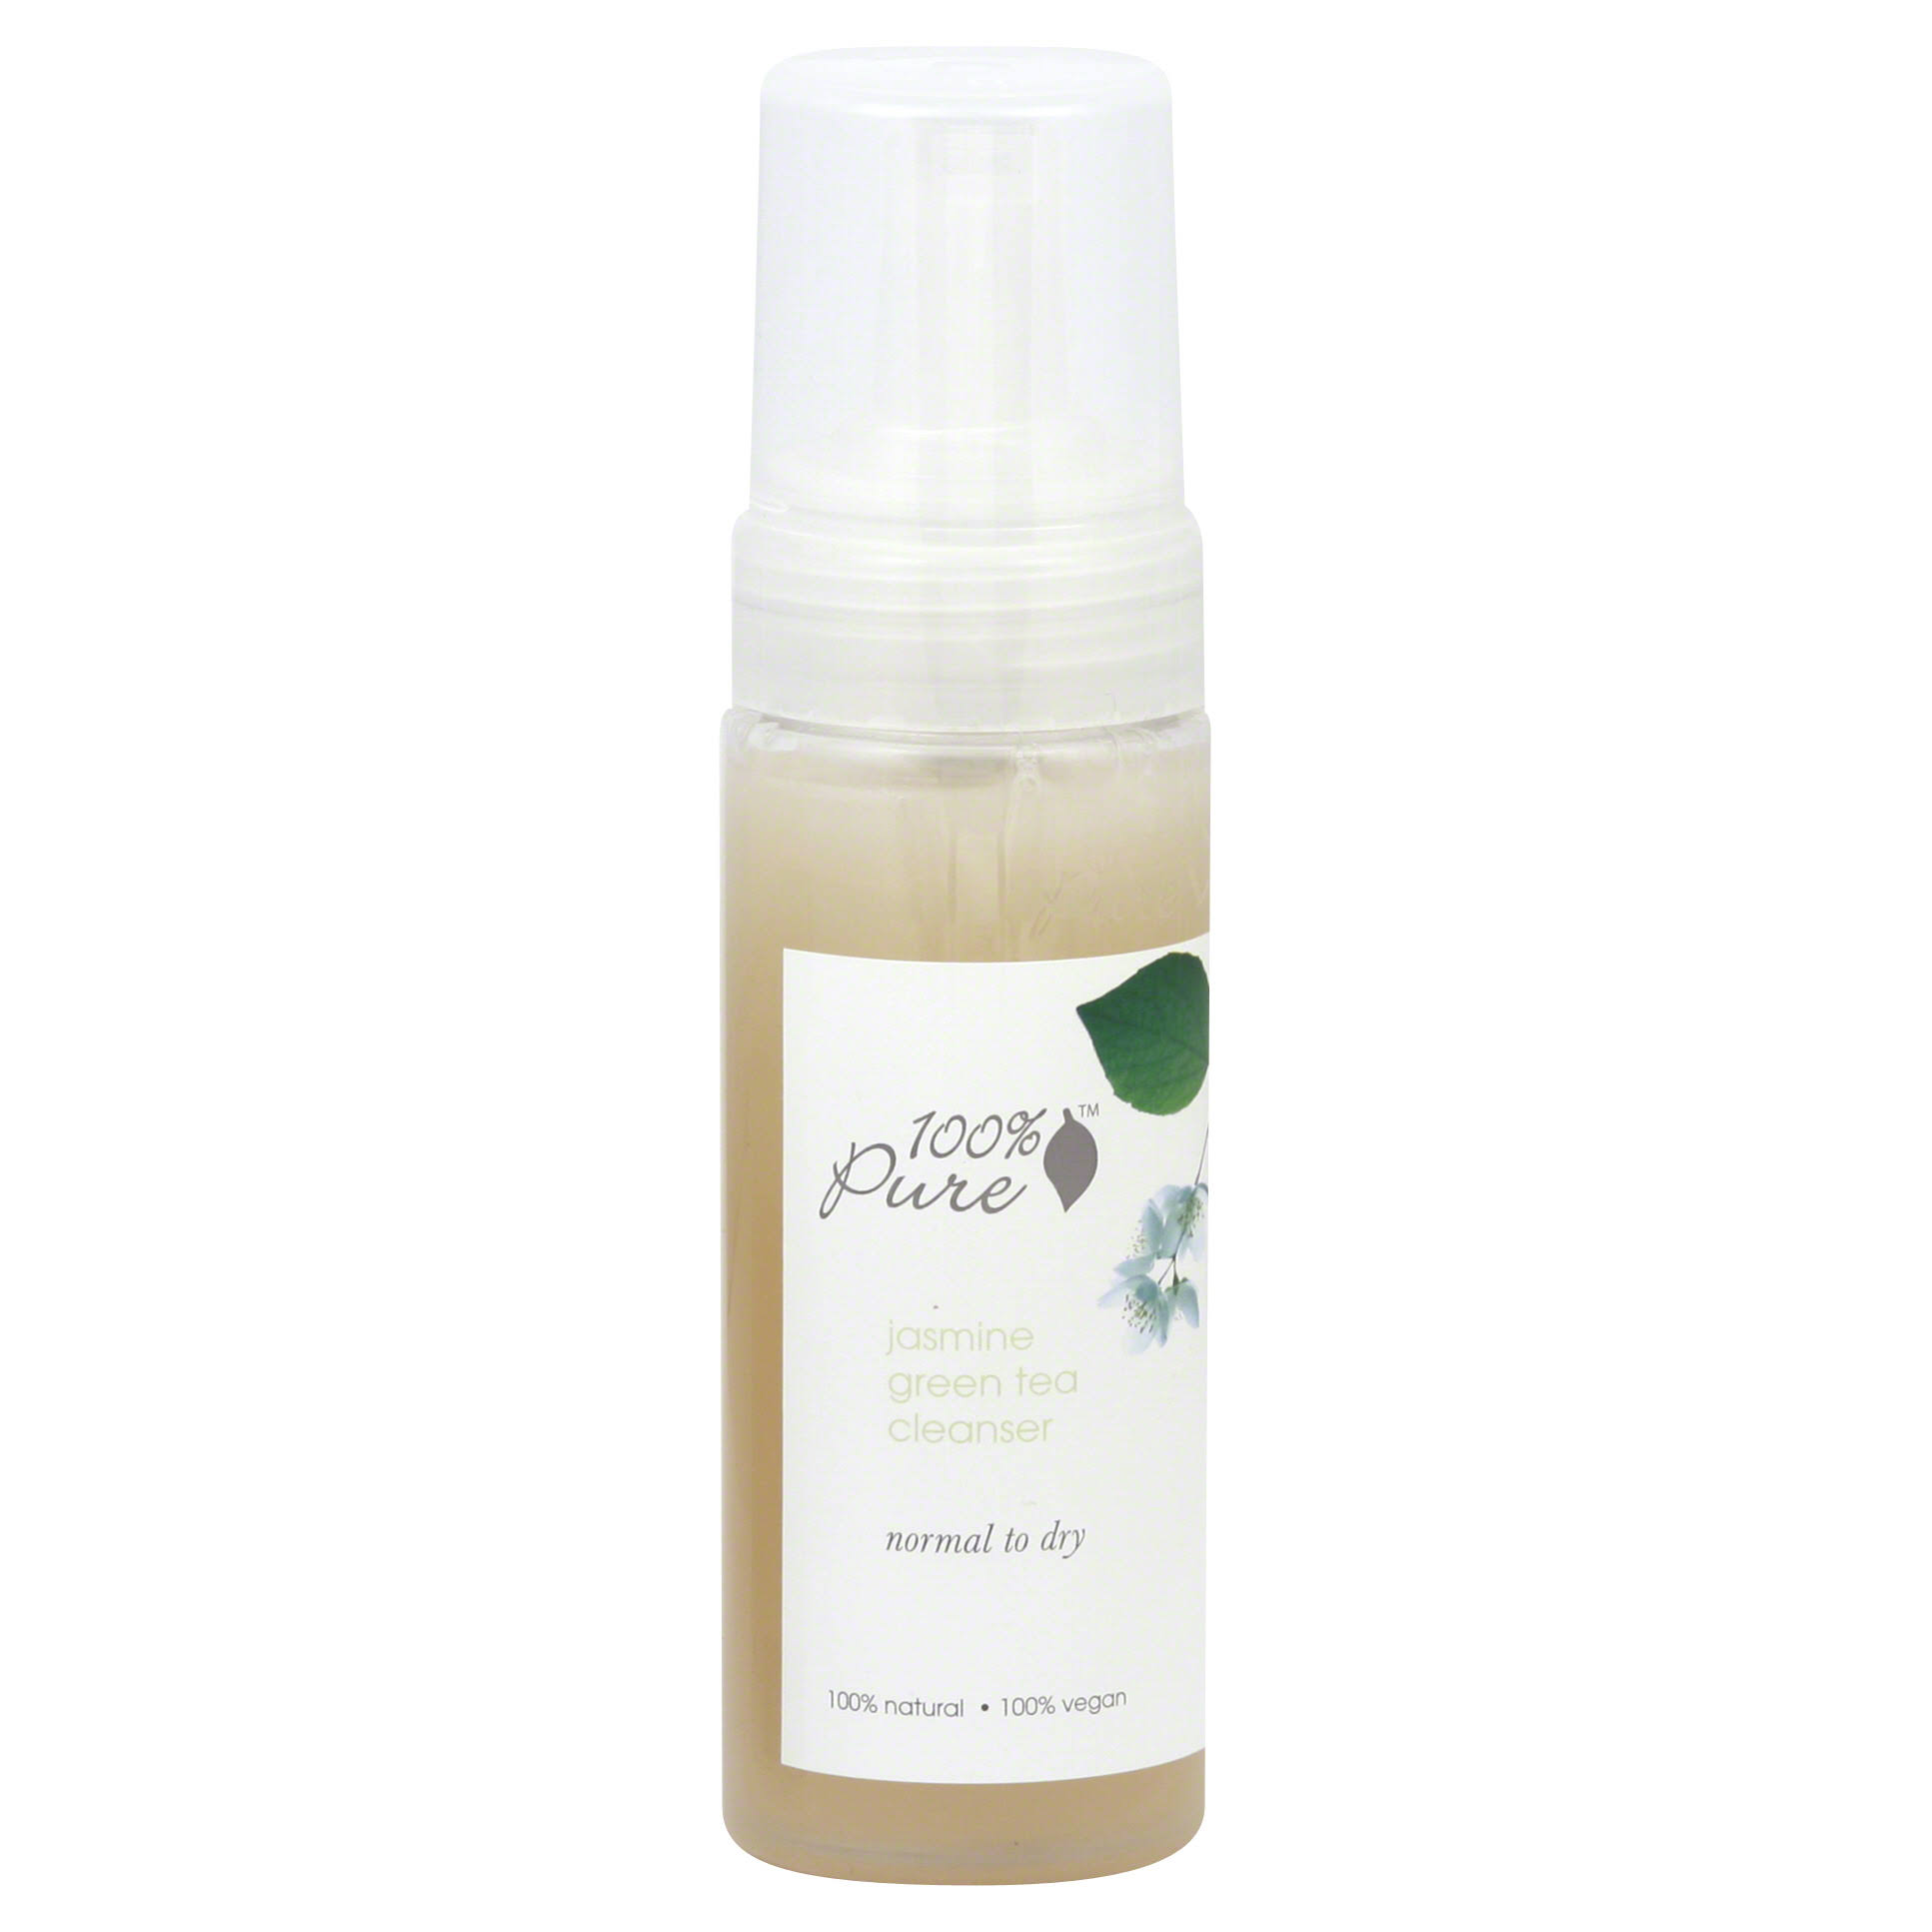 100% Pure Jasmine Green Tea Cleanser 6 oz